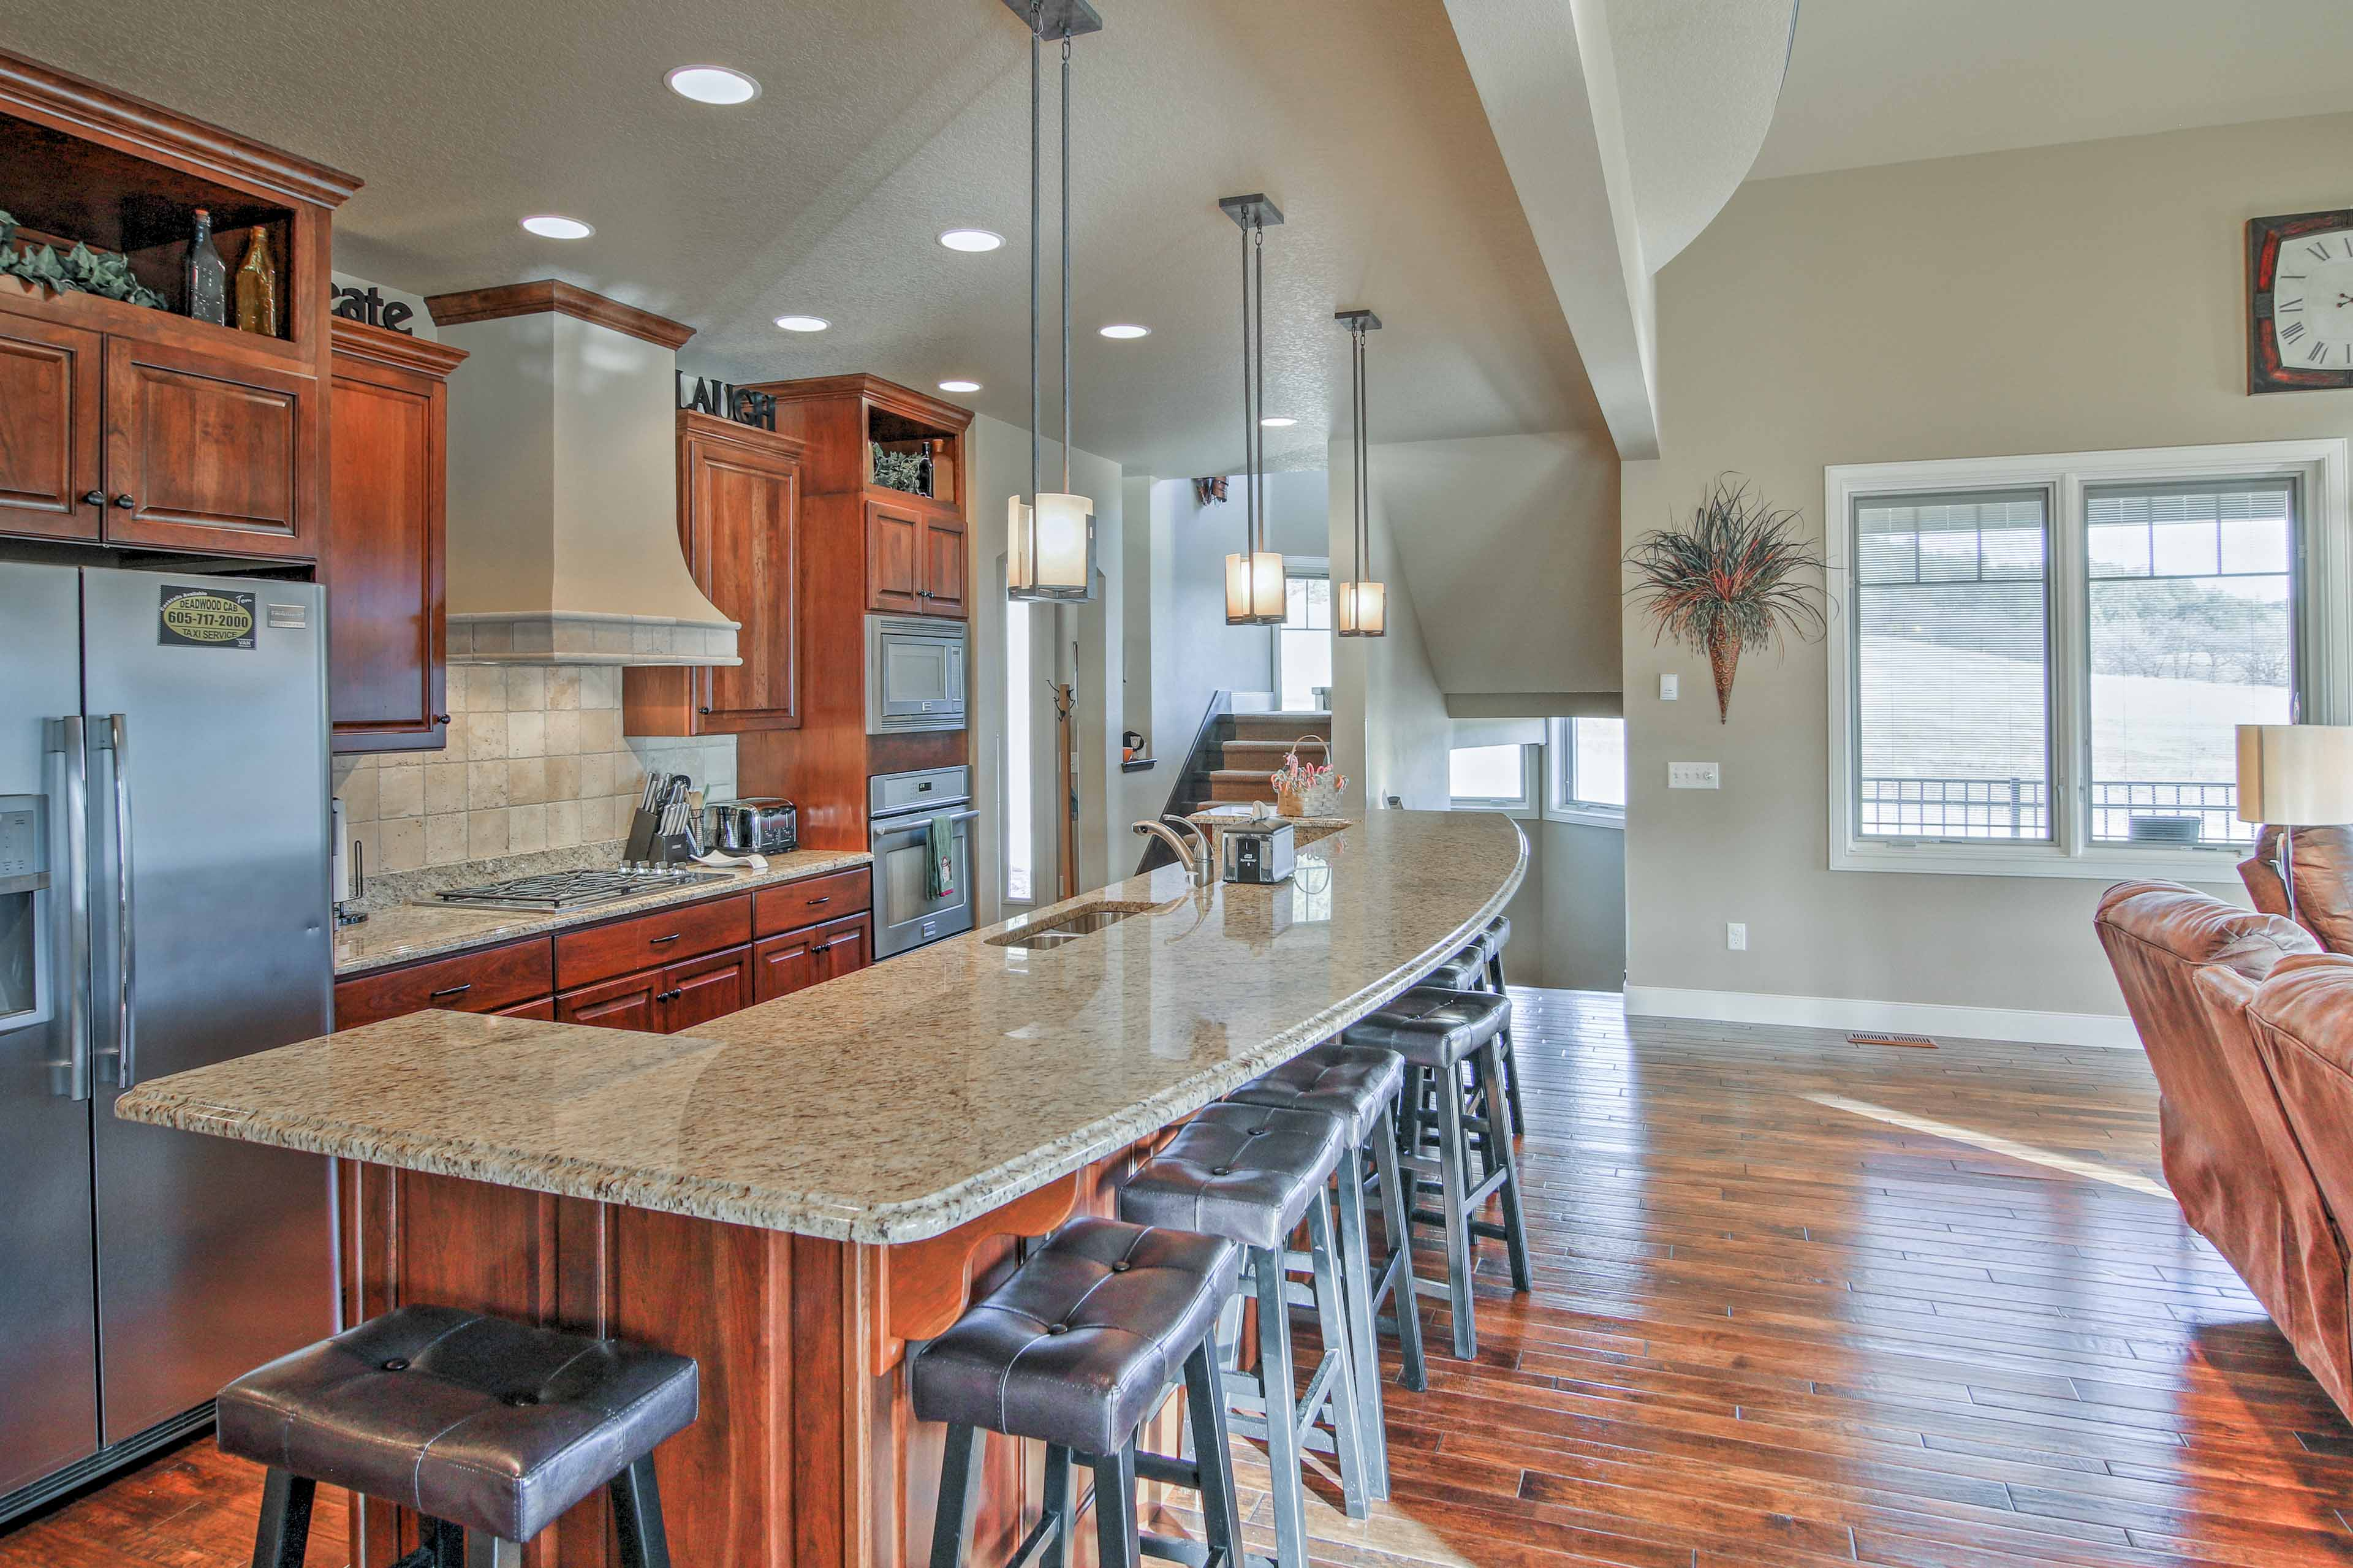 Grab a quick bite to eat at the 7-person bar seating around the kitchen island.